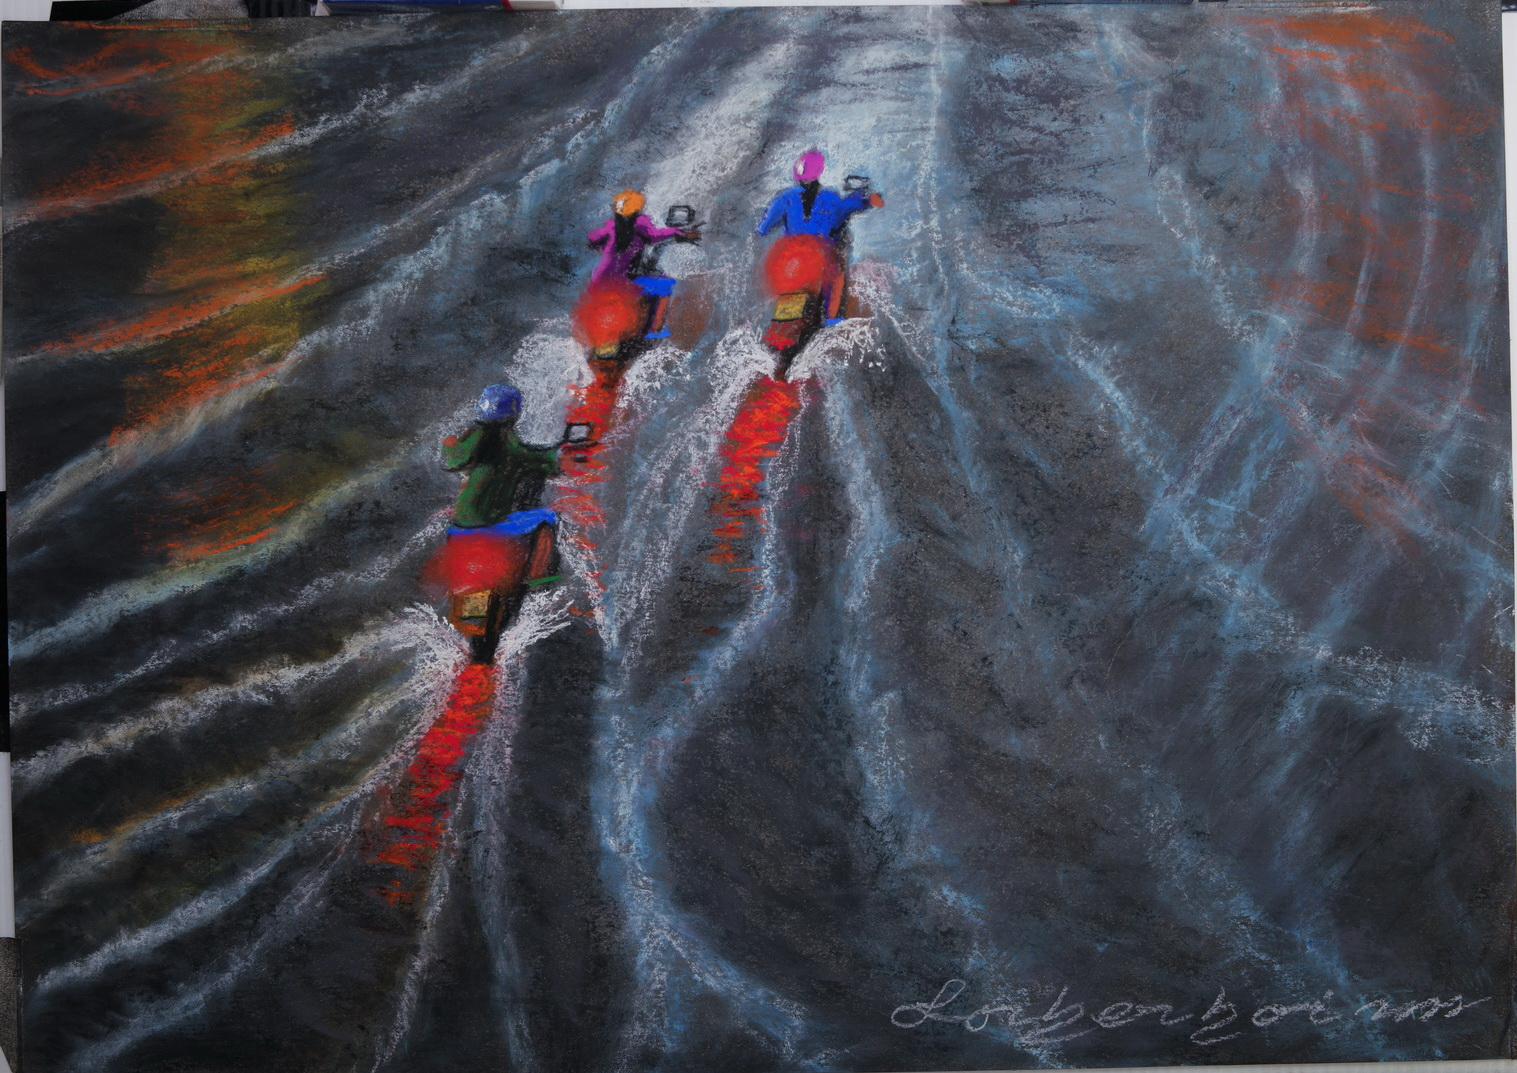 Three Motorbikes on flooded road at Loi Krathong and Yi Peng, Chiang Mai.Lorberboim Soft Pastel Painting.